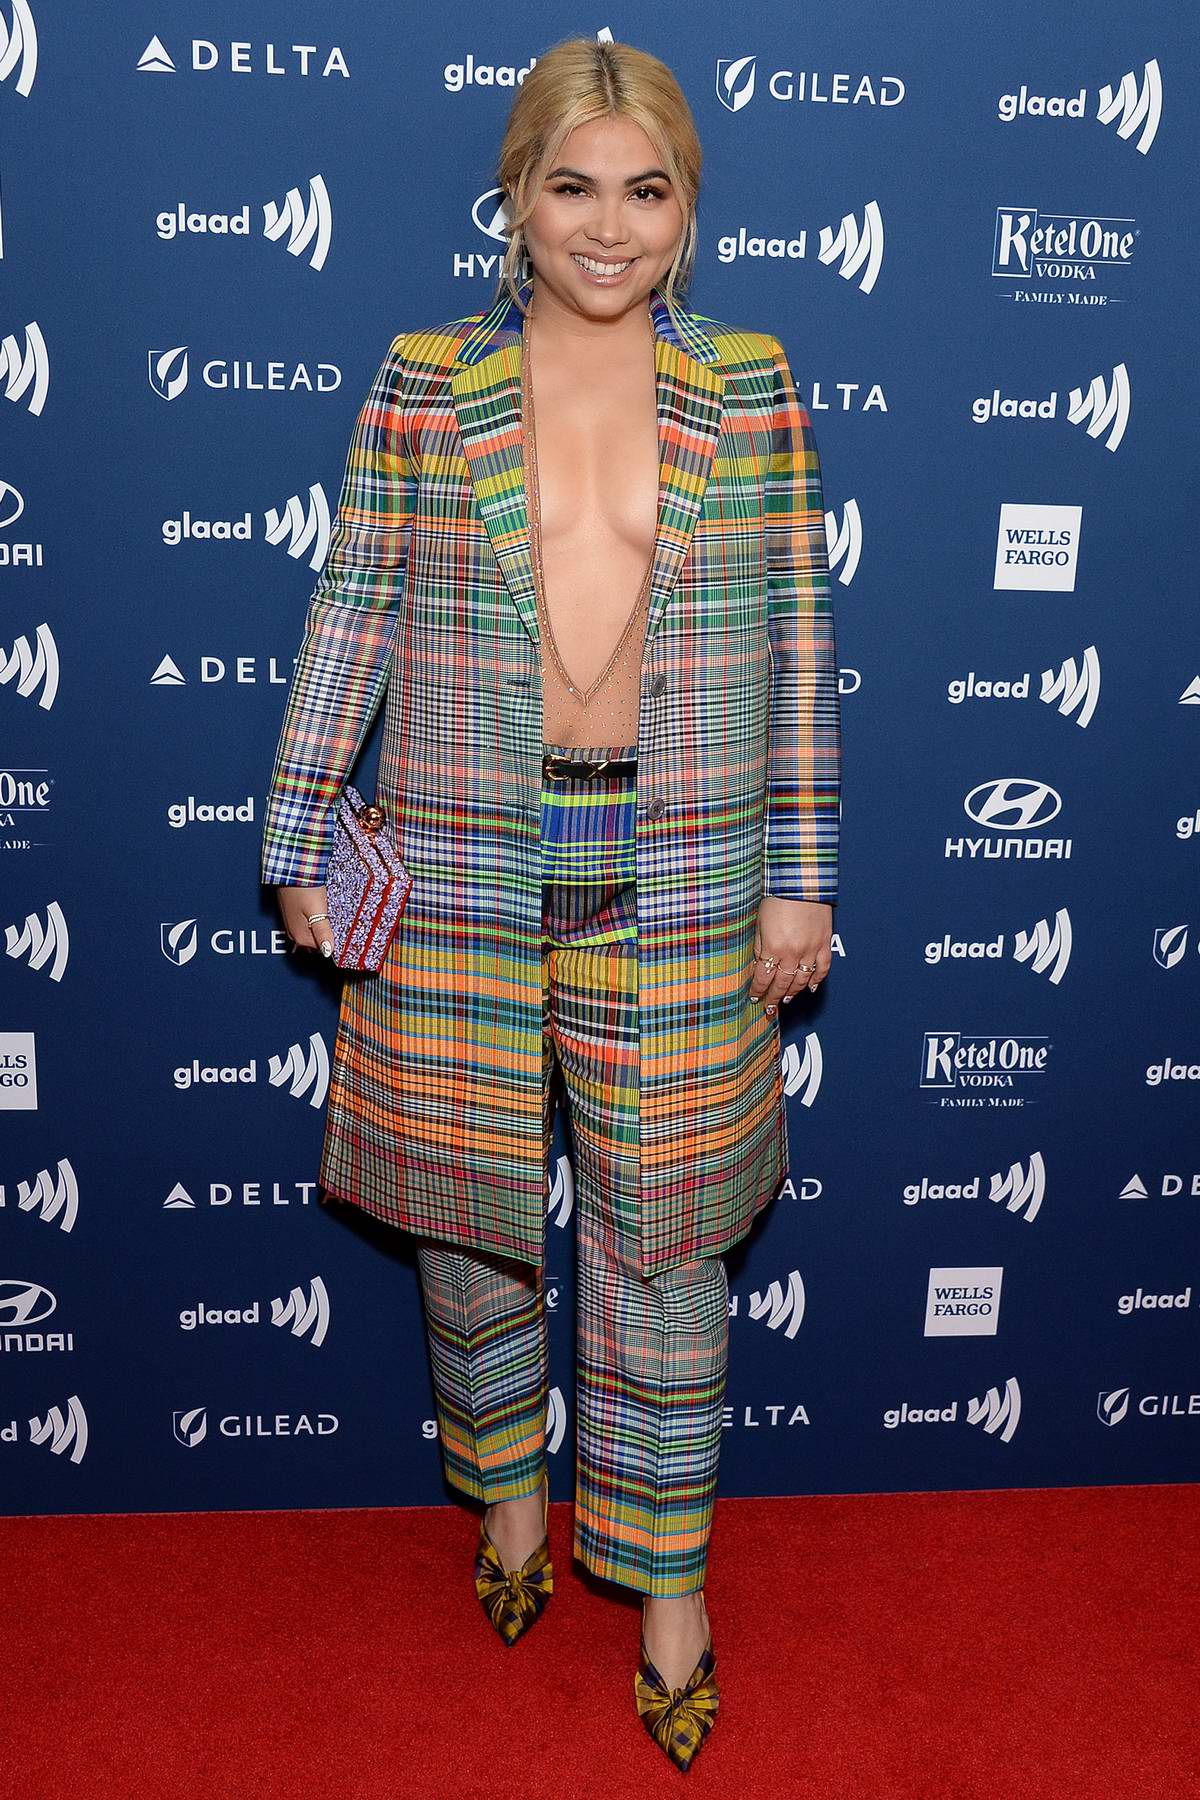 Hayley Kiyoko attends the 30th Annual GLAAD Media Awards at The Beverly Hilton Hotel in Beverly Hills, California